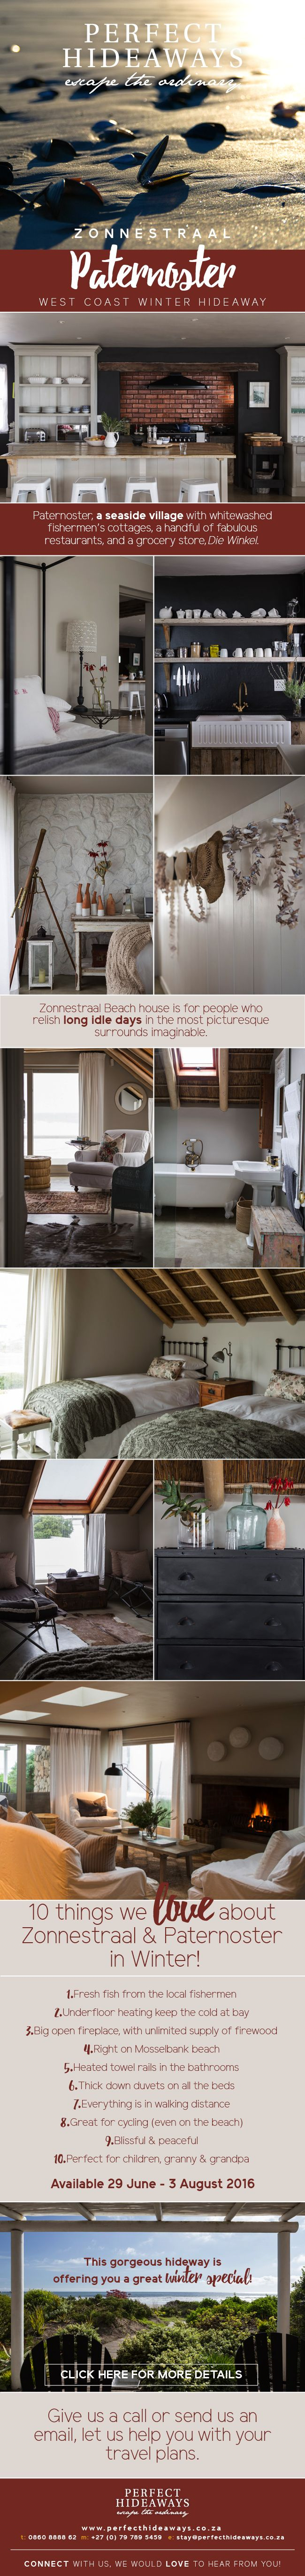 http://www.perfecthideaways.co.za/Details/Zonnestraal-Beach-House #westcoast #southafrica #paternoster #crayfish #villagelife